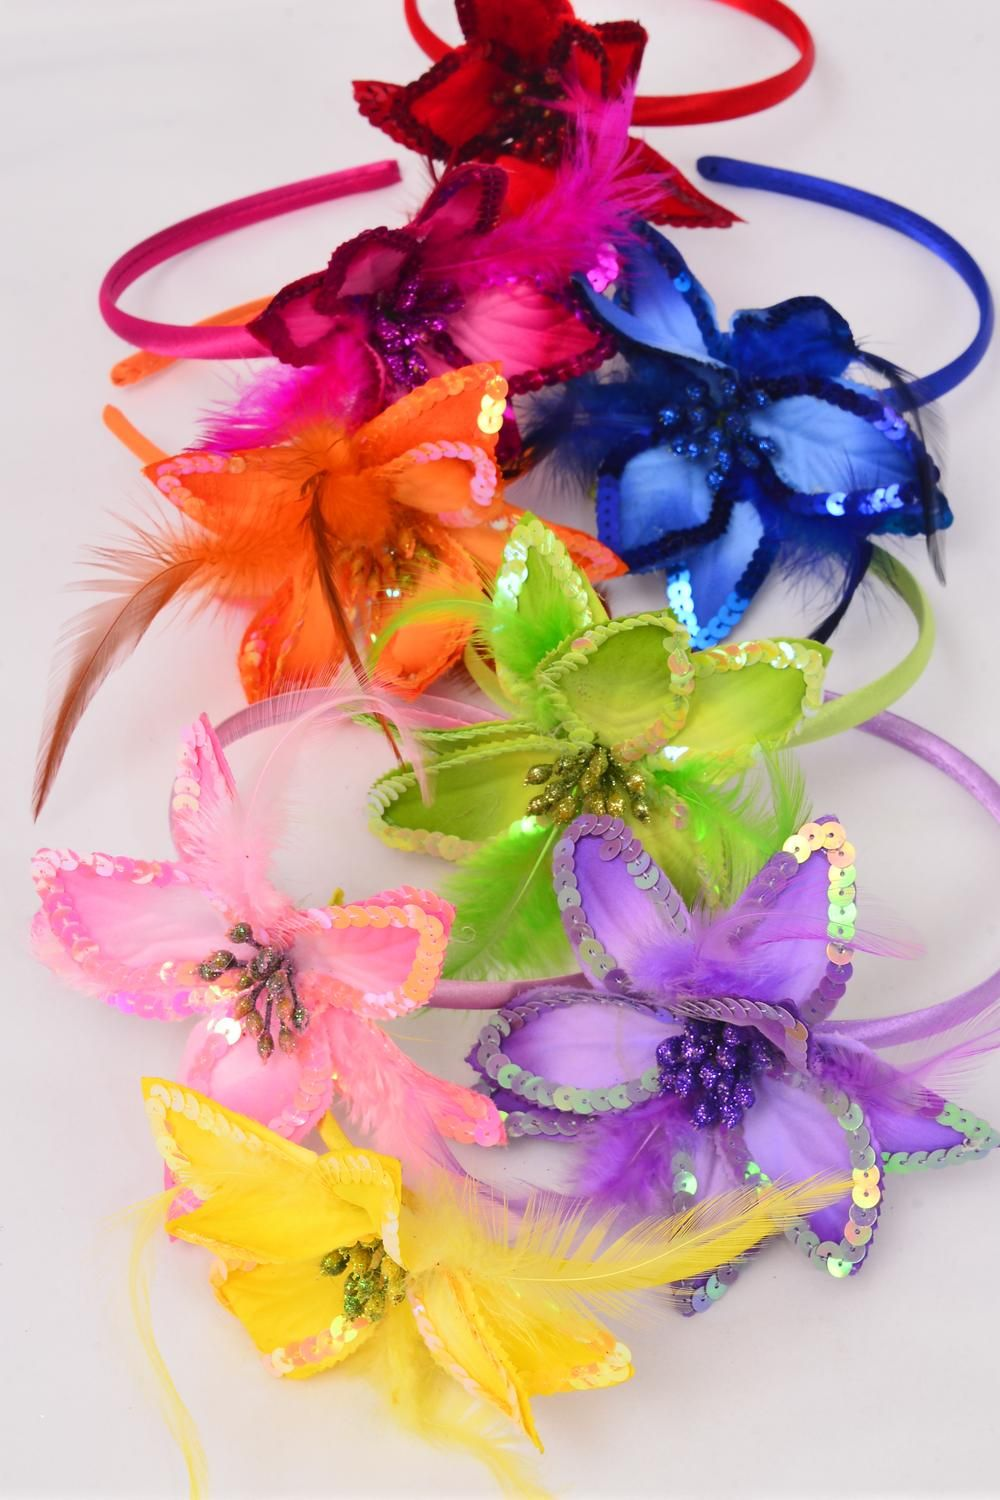 Headband Horseshoe Satin Sequin Lilly Flower Feathers Multidz